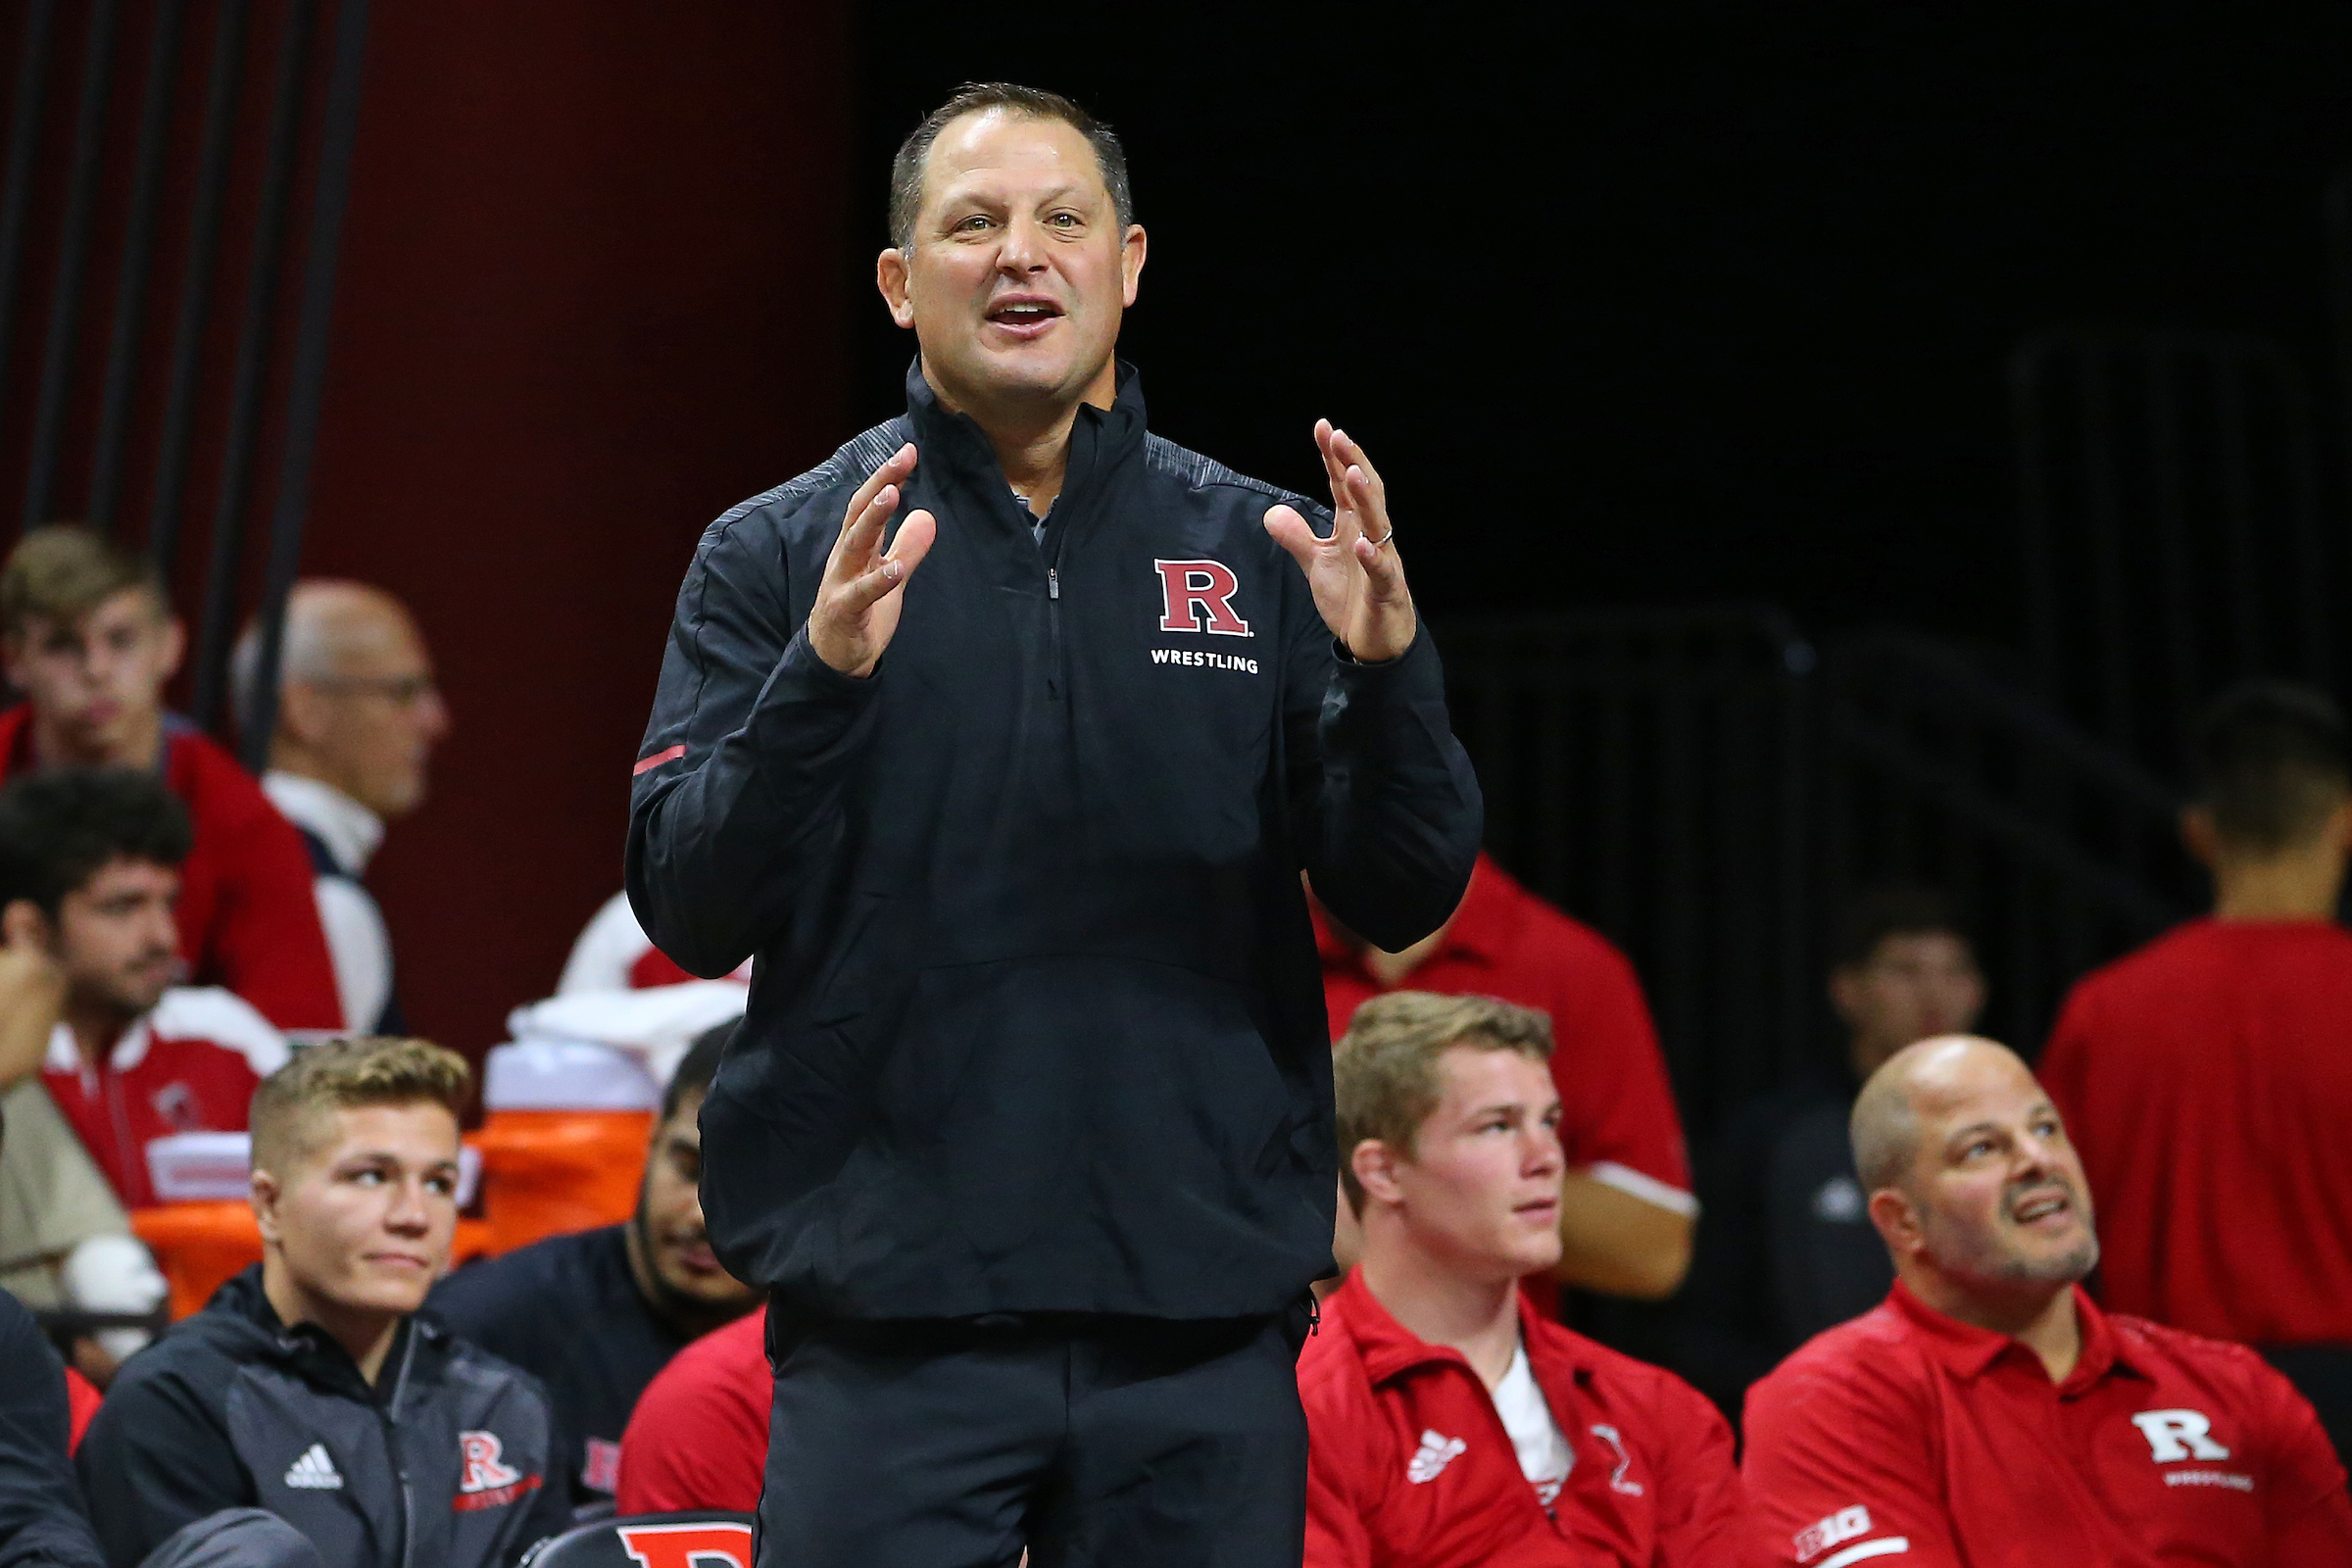 Scott Goodale - Since taking over the program on July 31, 2007, head coach Scott Goodale has made Rutgers wrestling into one of the most relevant teams in the country. With the help of associate head coach Donny Pritzlaff, assistant coach John Leonardis and director of operations Joe Pollard, the Scarlet Knights have produced eight All-Americans in the past five seasons, and since 2009, have earned two top-10 finishes and seven top-25 finishes in the USA Today/ NWCA Division I Coaches Poll.